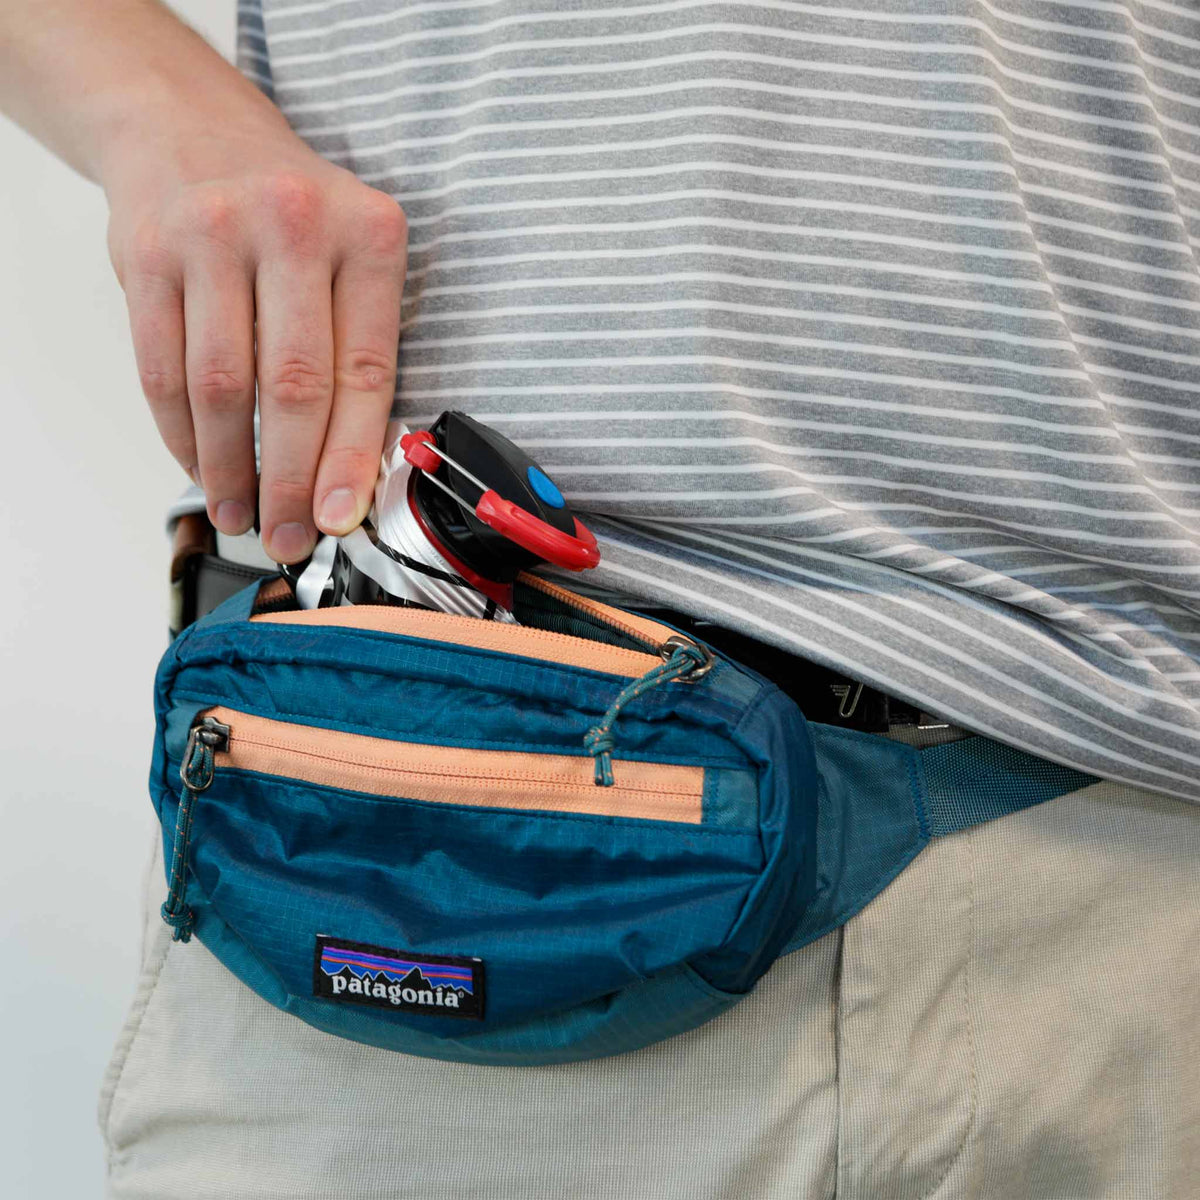 mymedic water bottle in fanny pack pouch